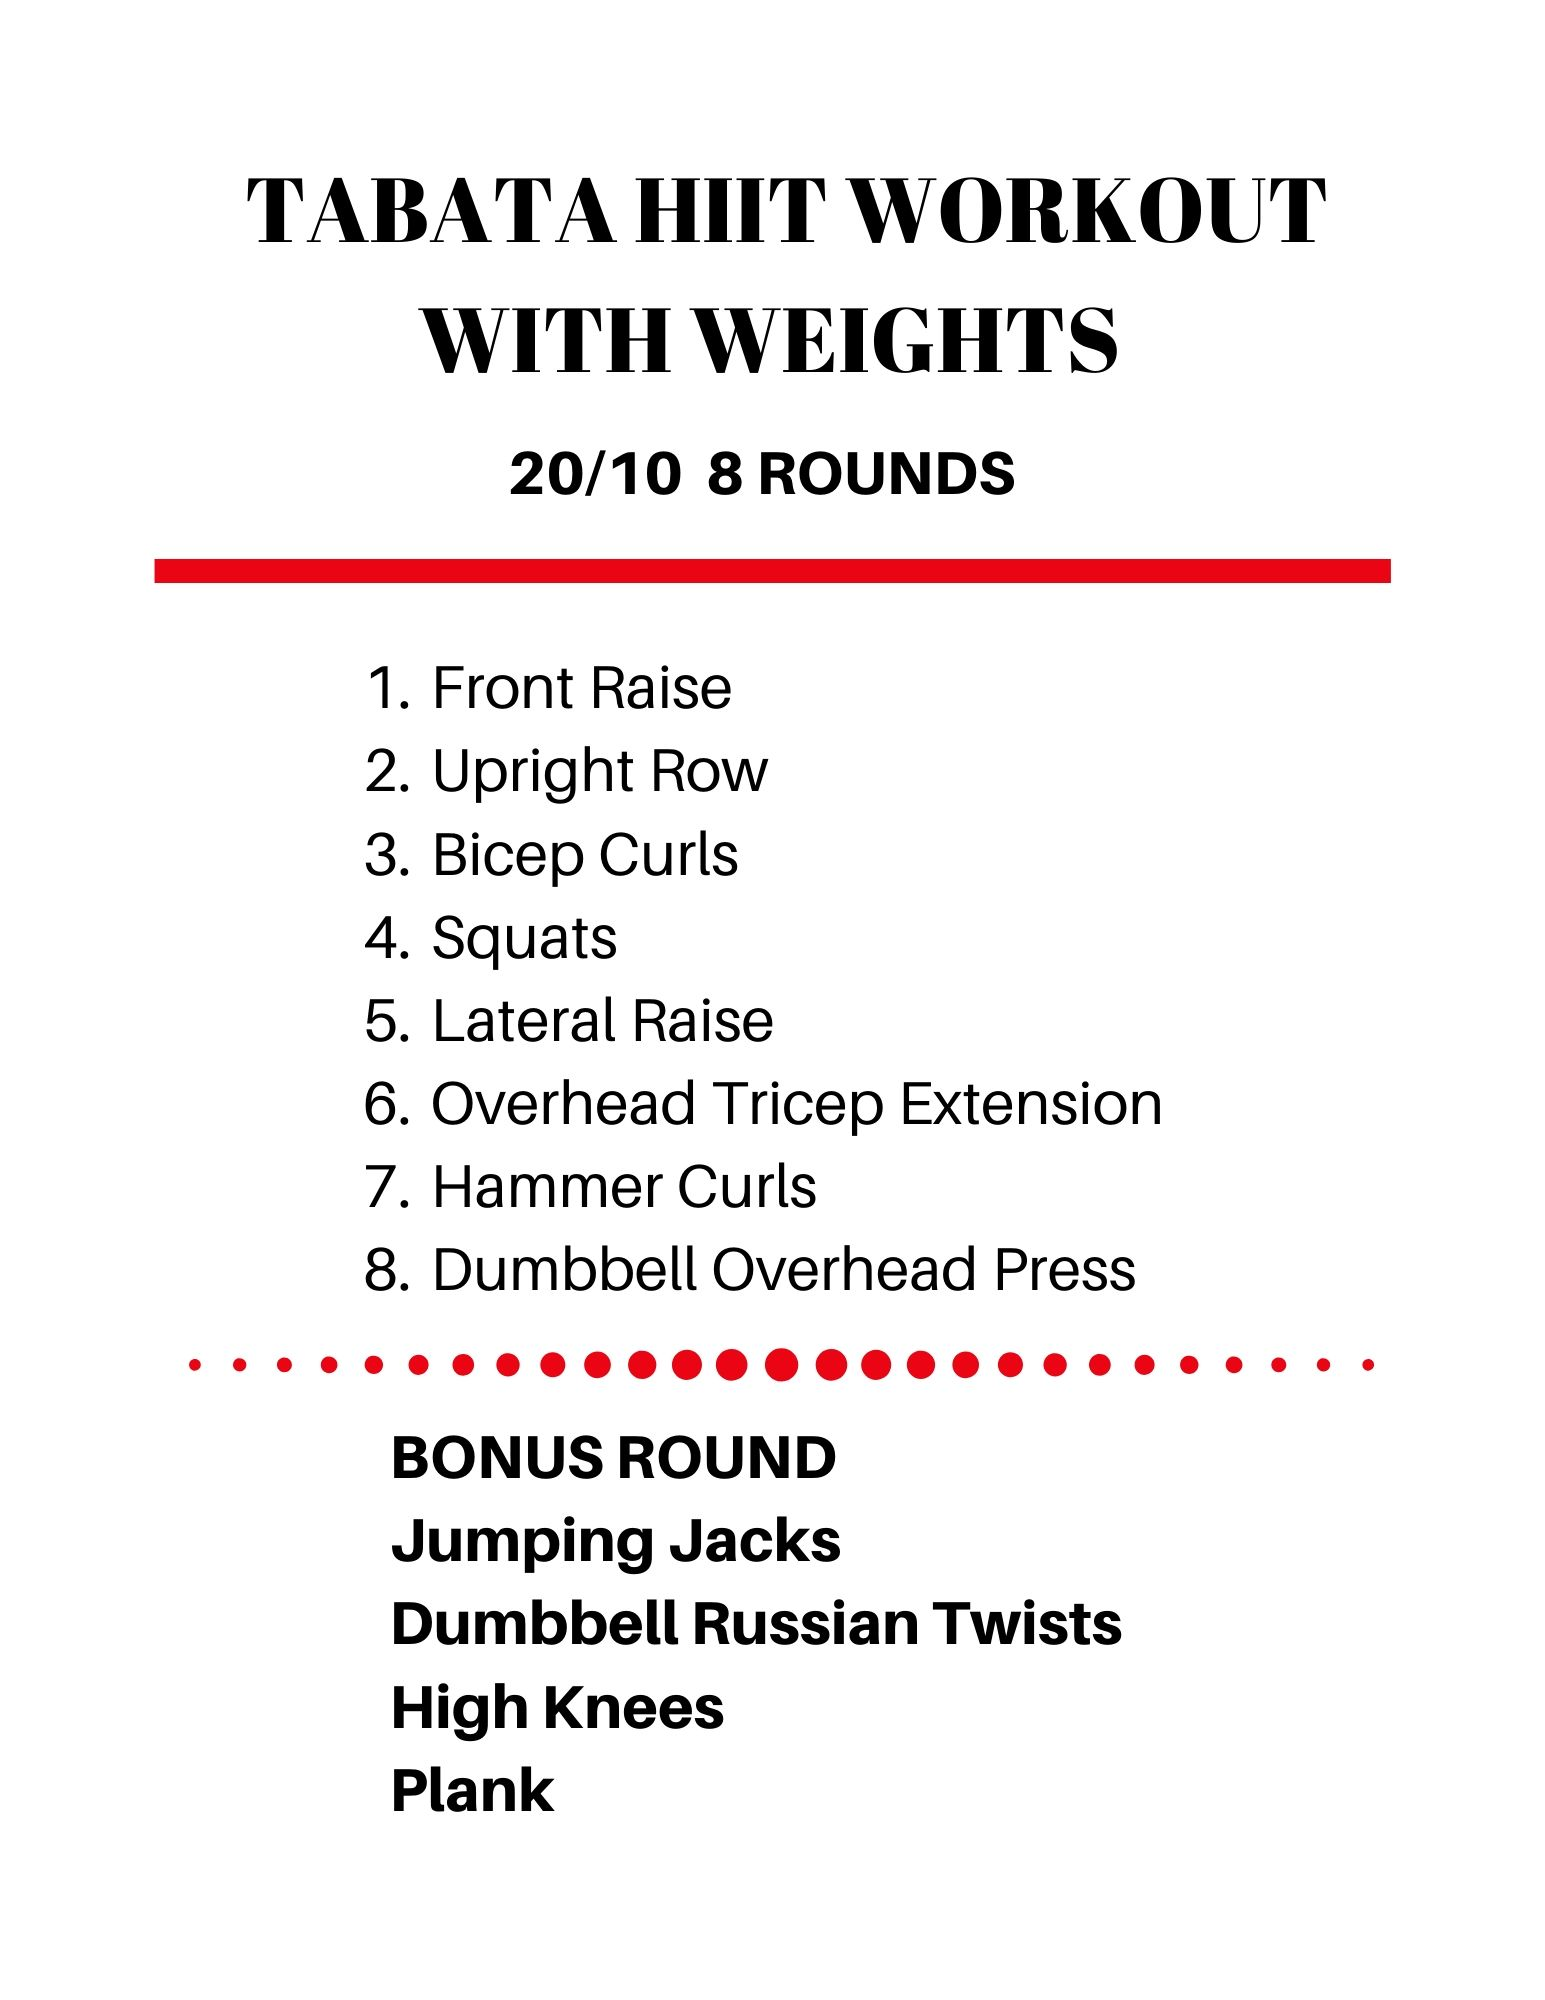 Tabata HIIT Workout with Weights - Check out all the workouts at jenbaucom.com